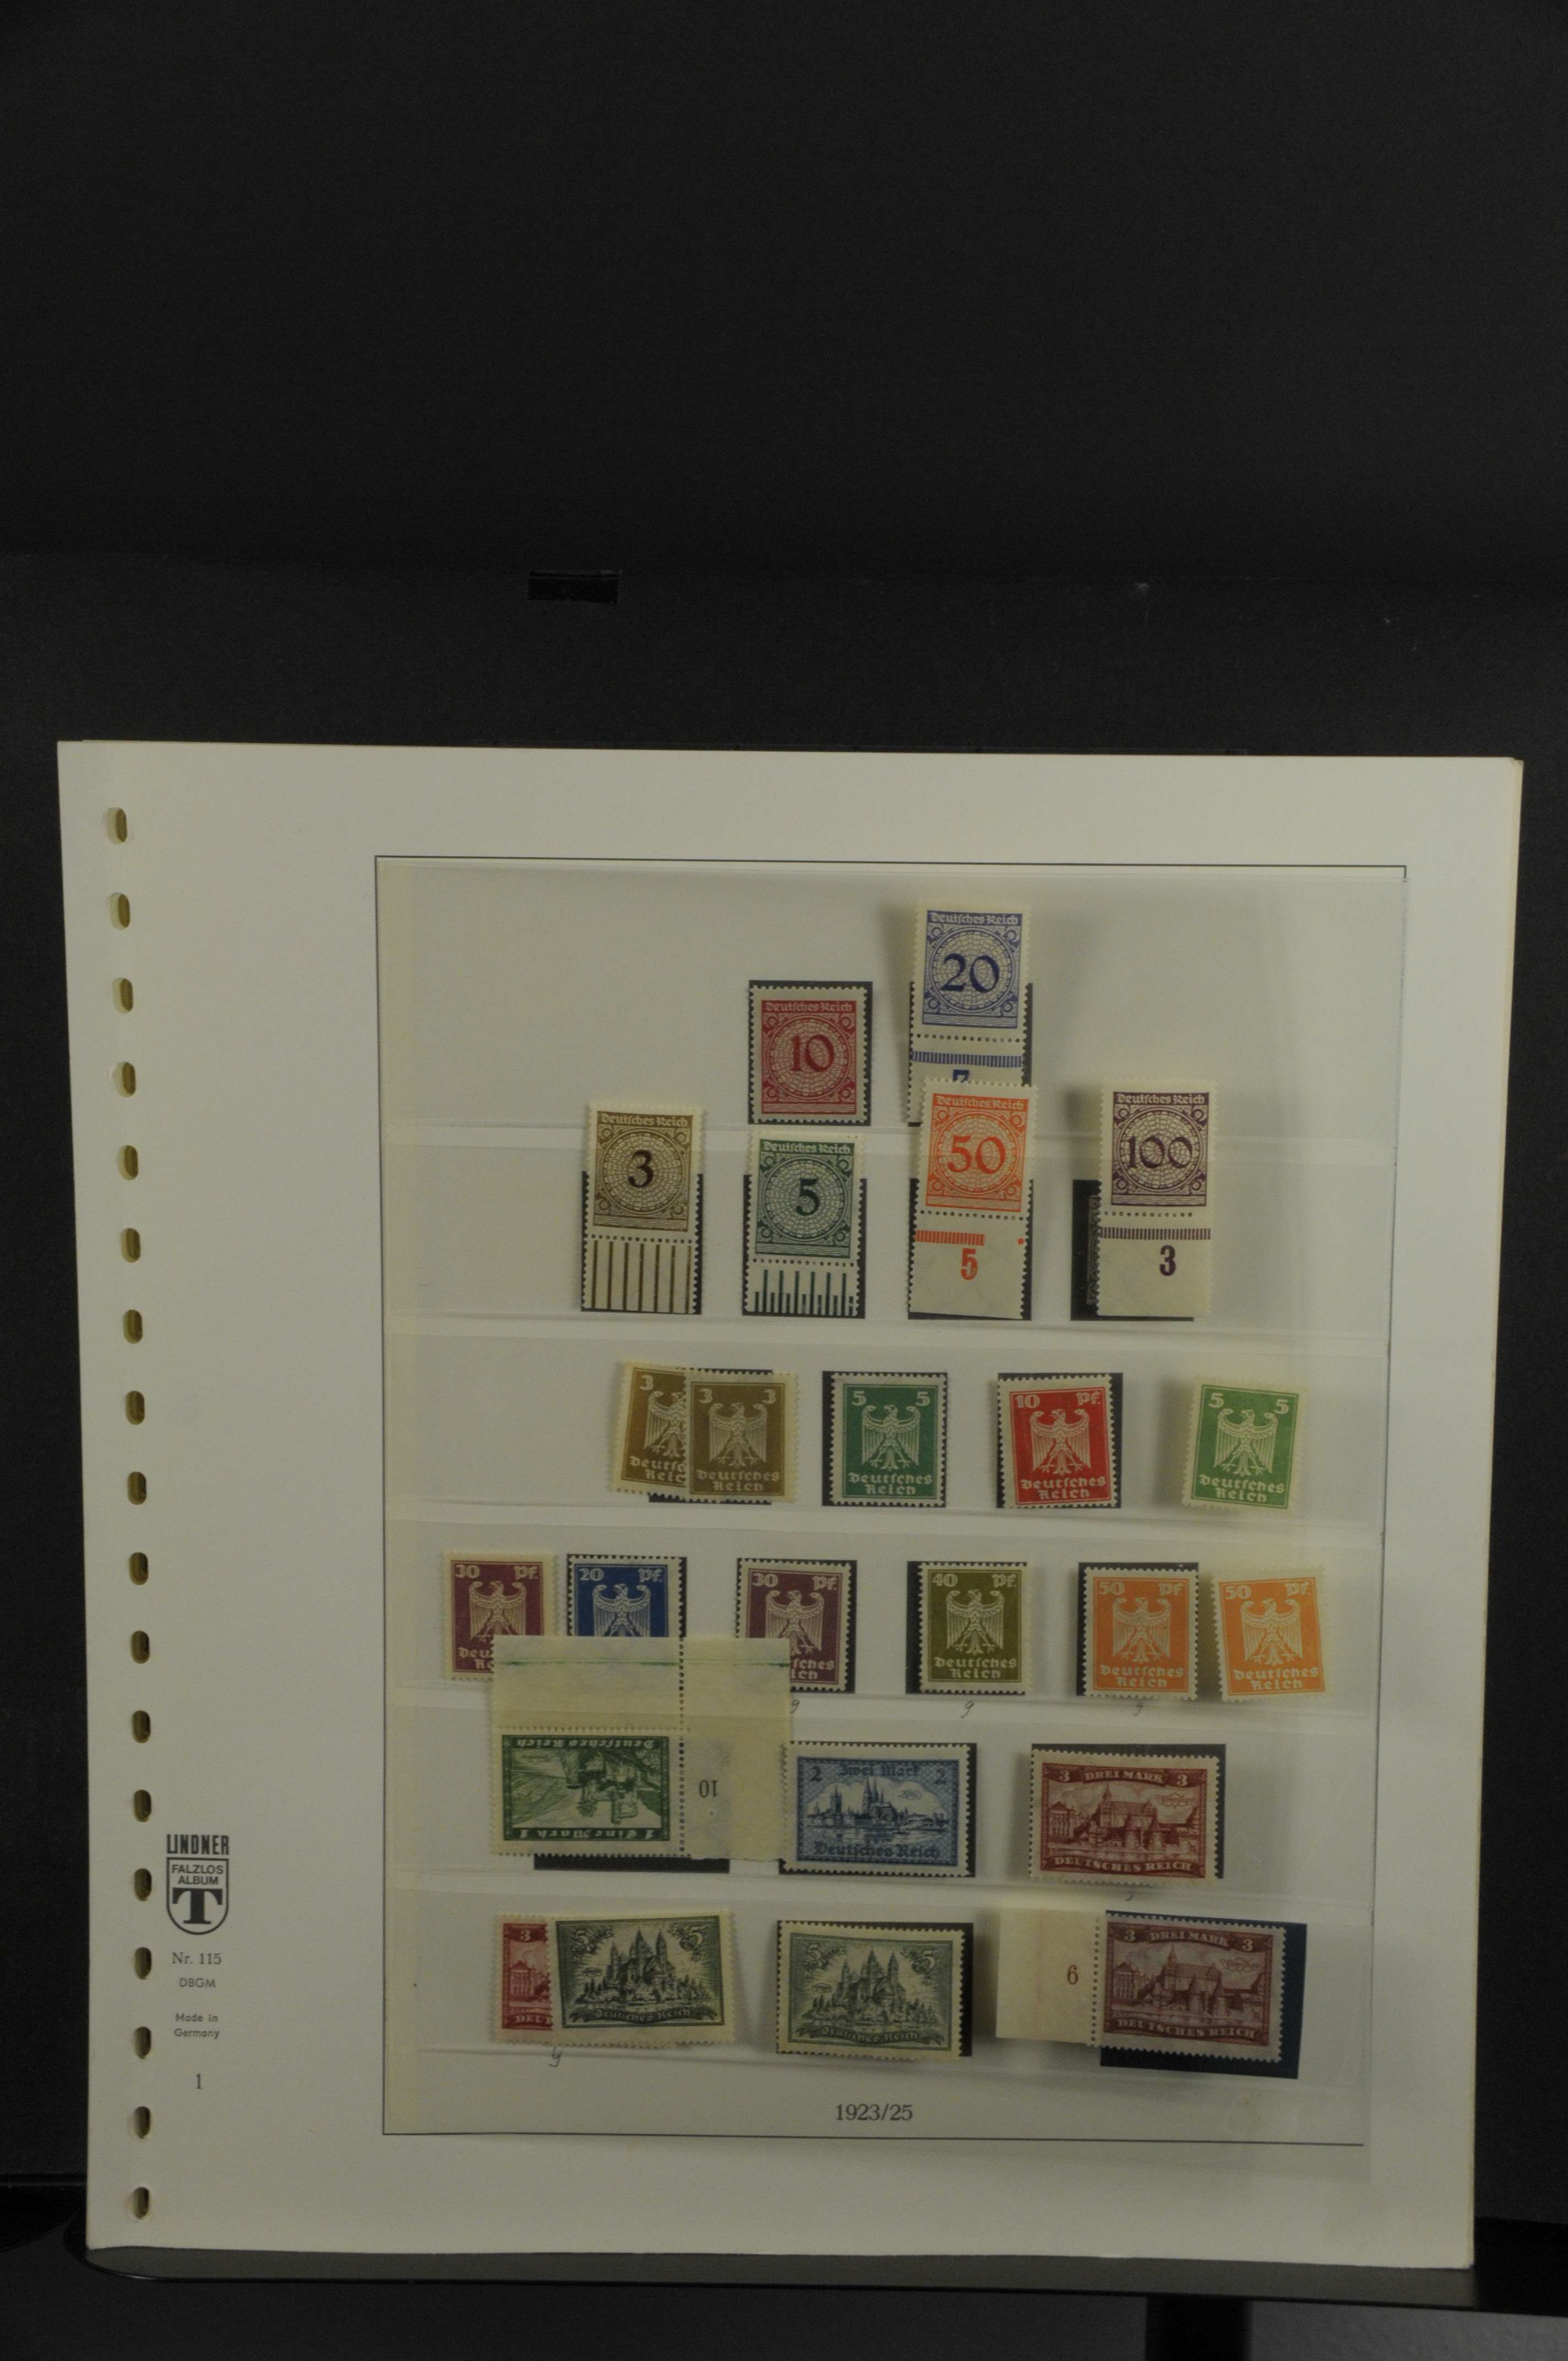 Lot 7918 - Deutsches Reich Allgemein -  Auktionshaus Ulrich Felzmann GmbH & Co. KG Auction 165 | Philately, Airmail, Zeppelinmail and Astrophilately, international,  German and collections.